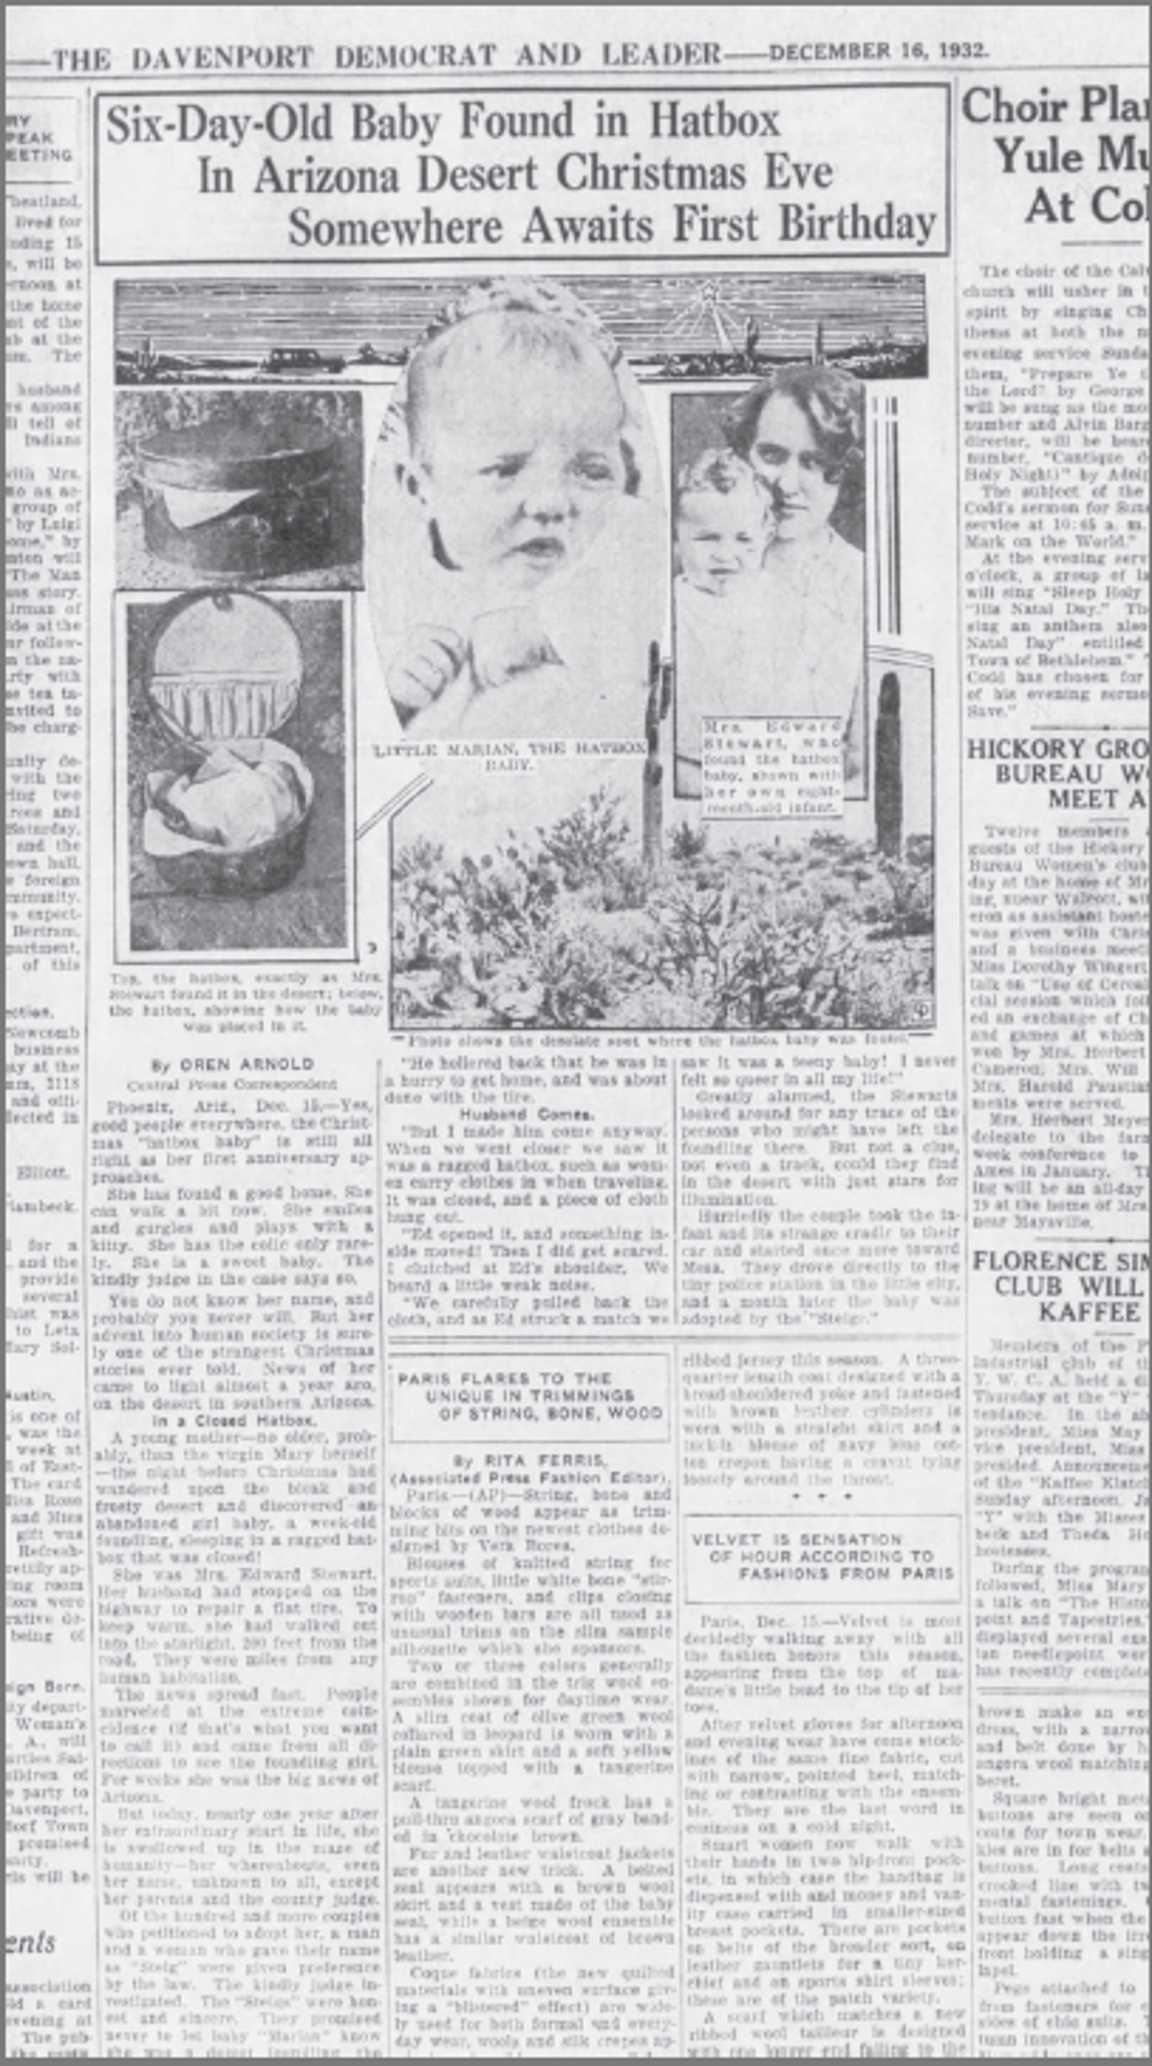 The Hatbox Baby story appeared in papers around the country, including the Quad-City Times in Davenport, Iowa, Dec. 16, 1932.